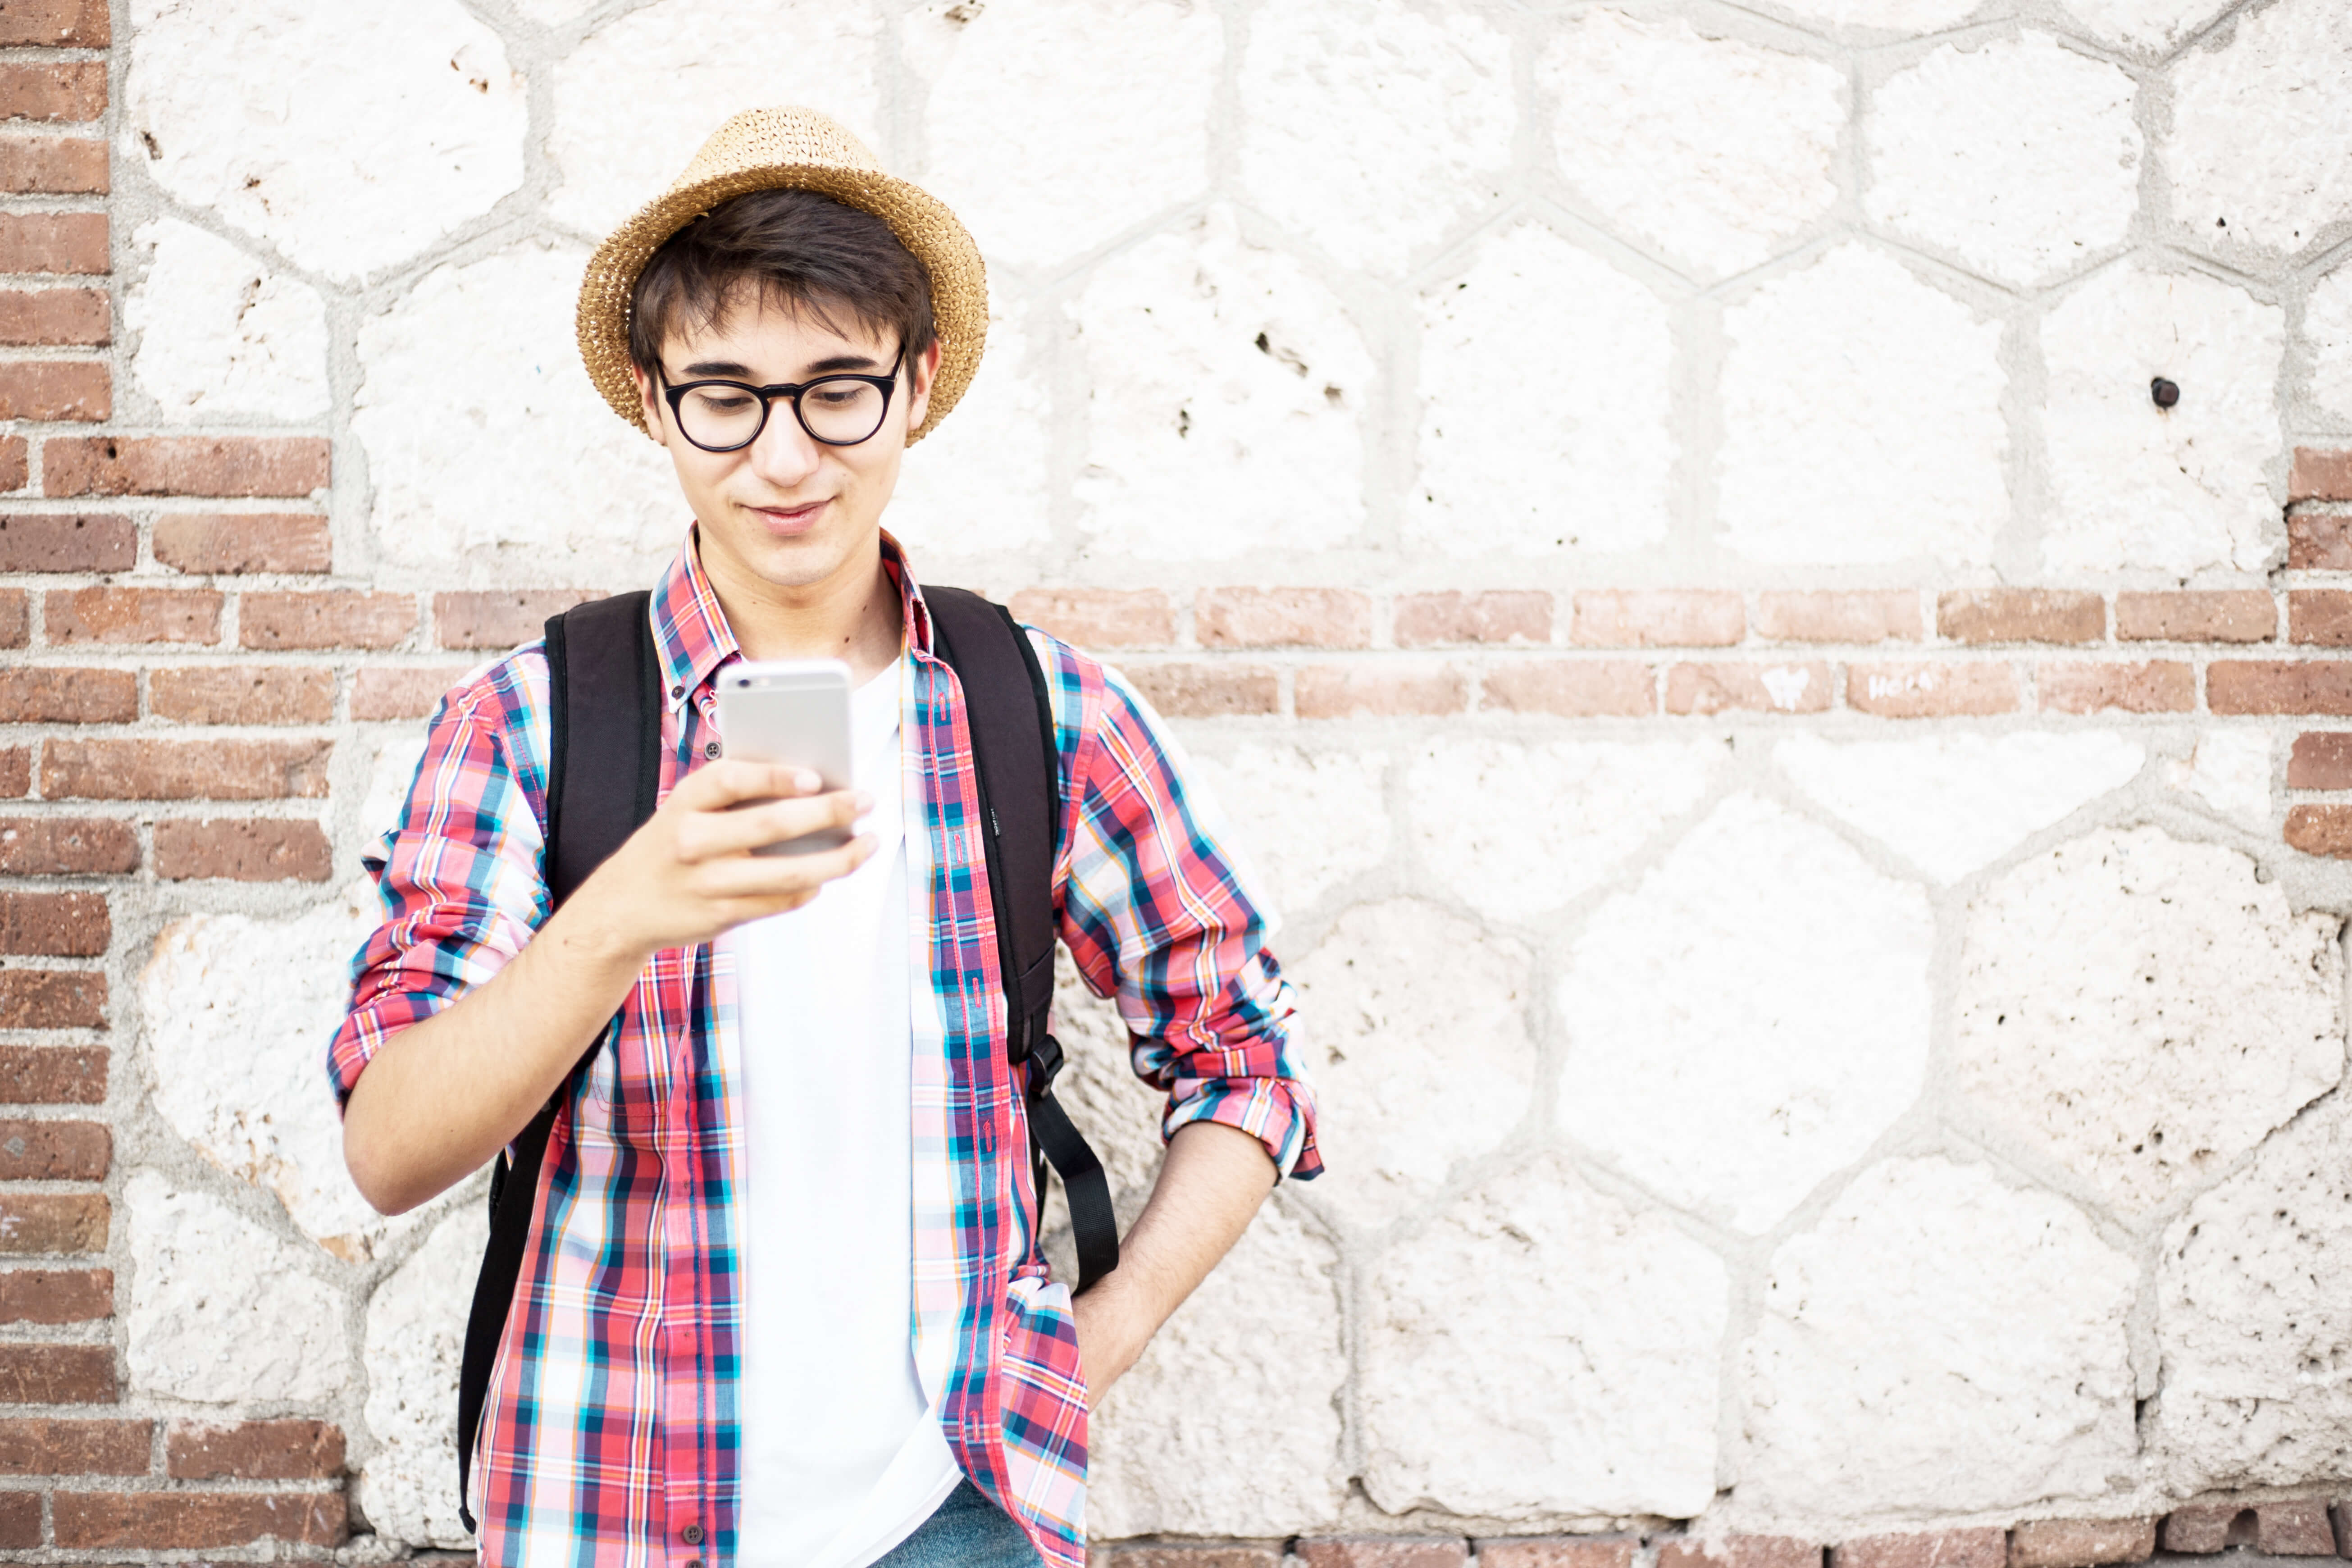 Young man on a phone